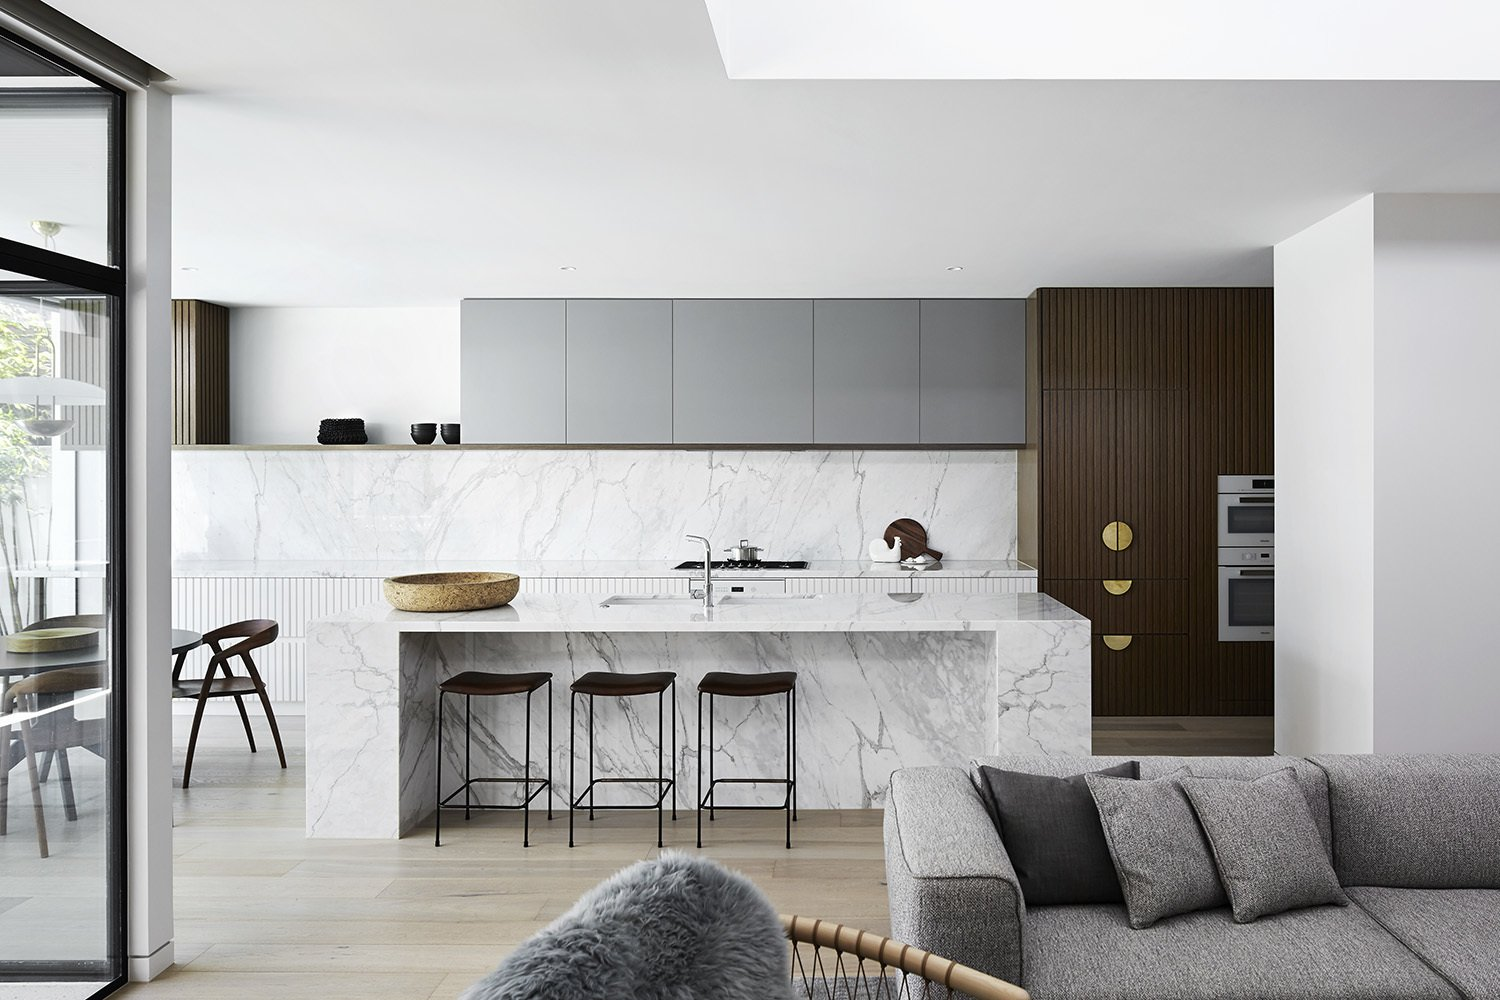 Kitchen, Wall Oven, Undermount Sink, Light Hardwood Floor, White Cabinet, Wood Cabinet, and Marble Counter  Photo 4 of 13 in A Melbourne Midcentury Gets a Palm Springs-Inspired Revival